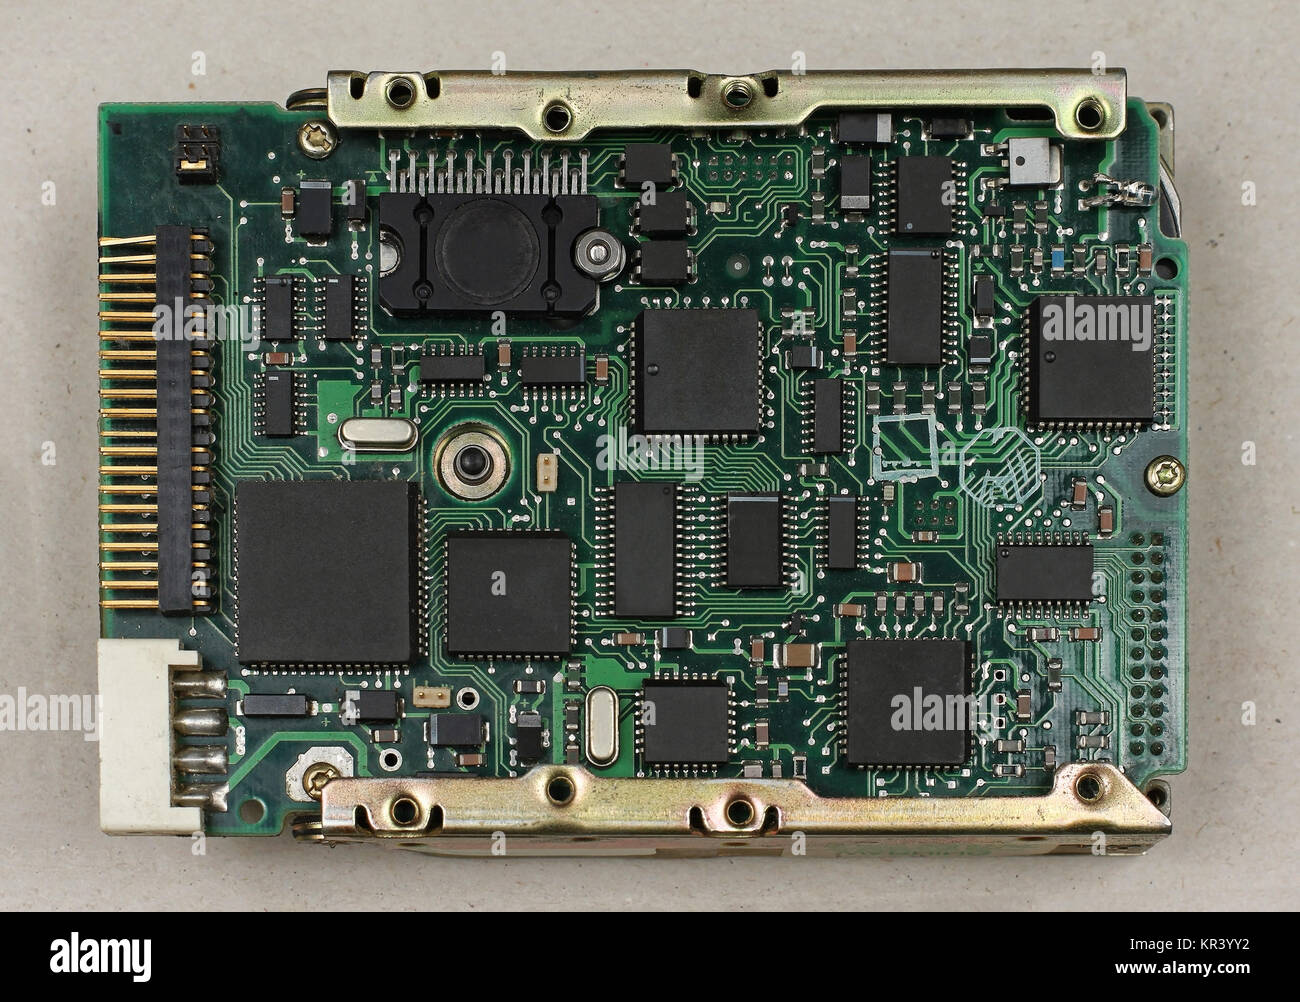 Electronic Board Technology Stock Photos Glass On The Schematic Diagramideal Background Circuit And Chip Image